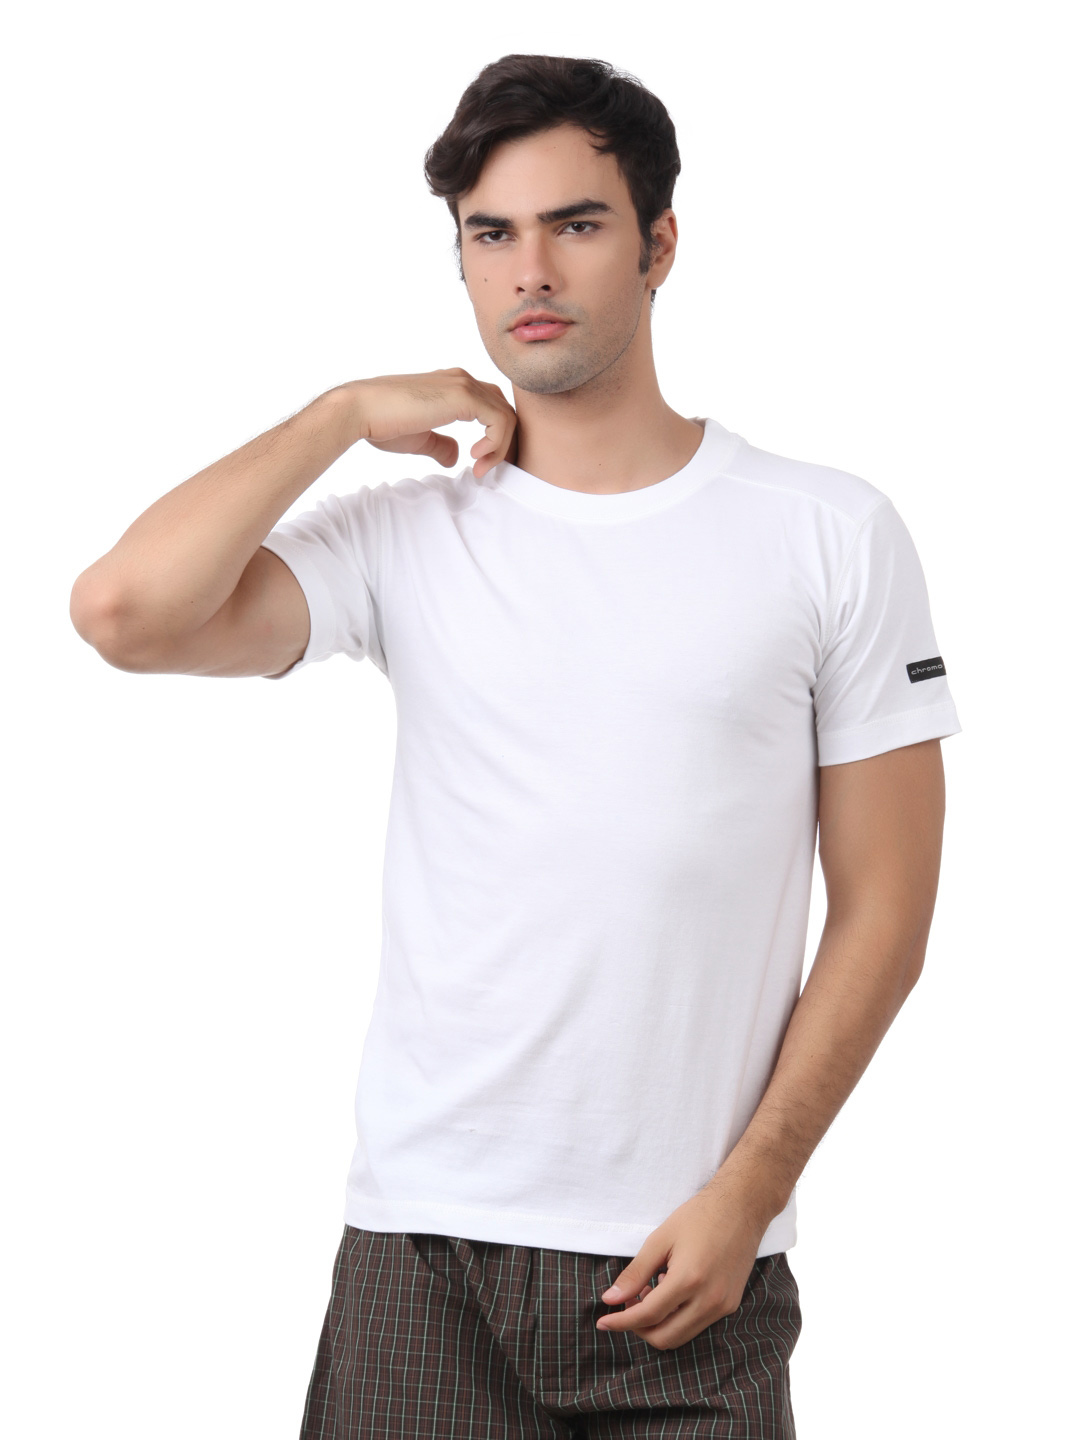 Chromozome Men White Innerwear T-shirt